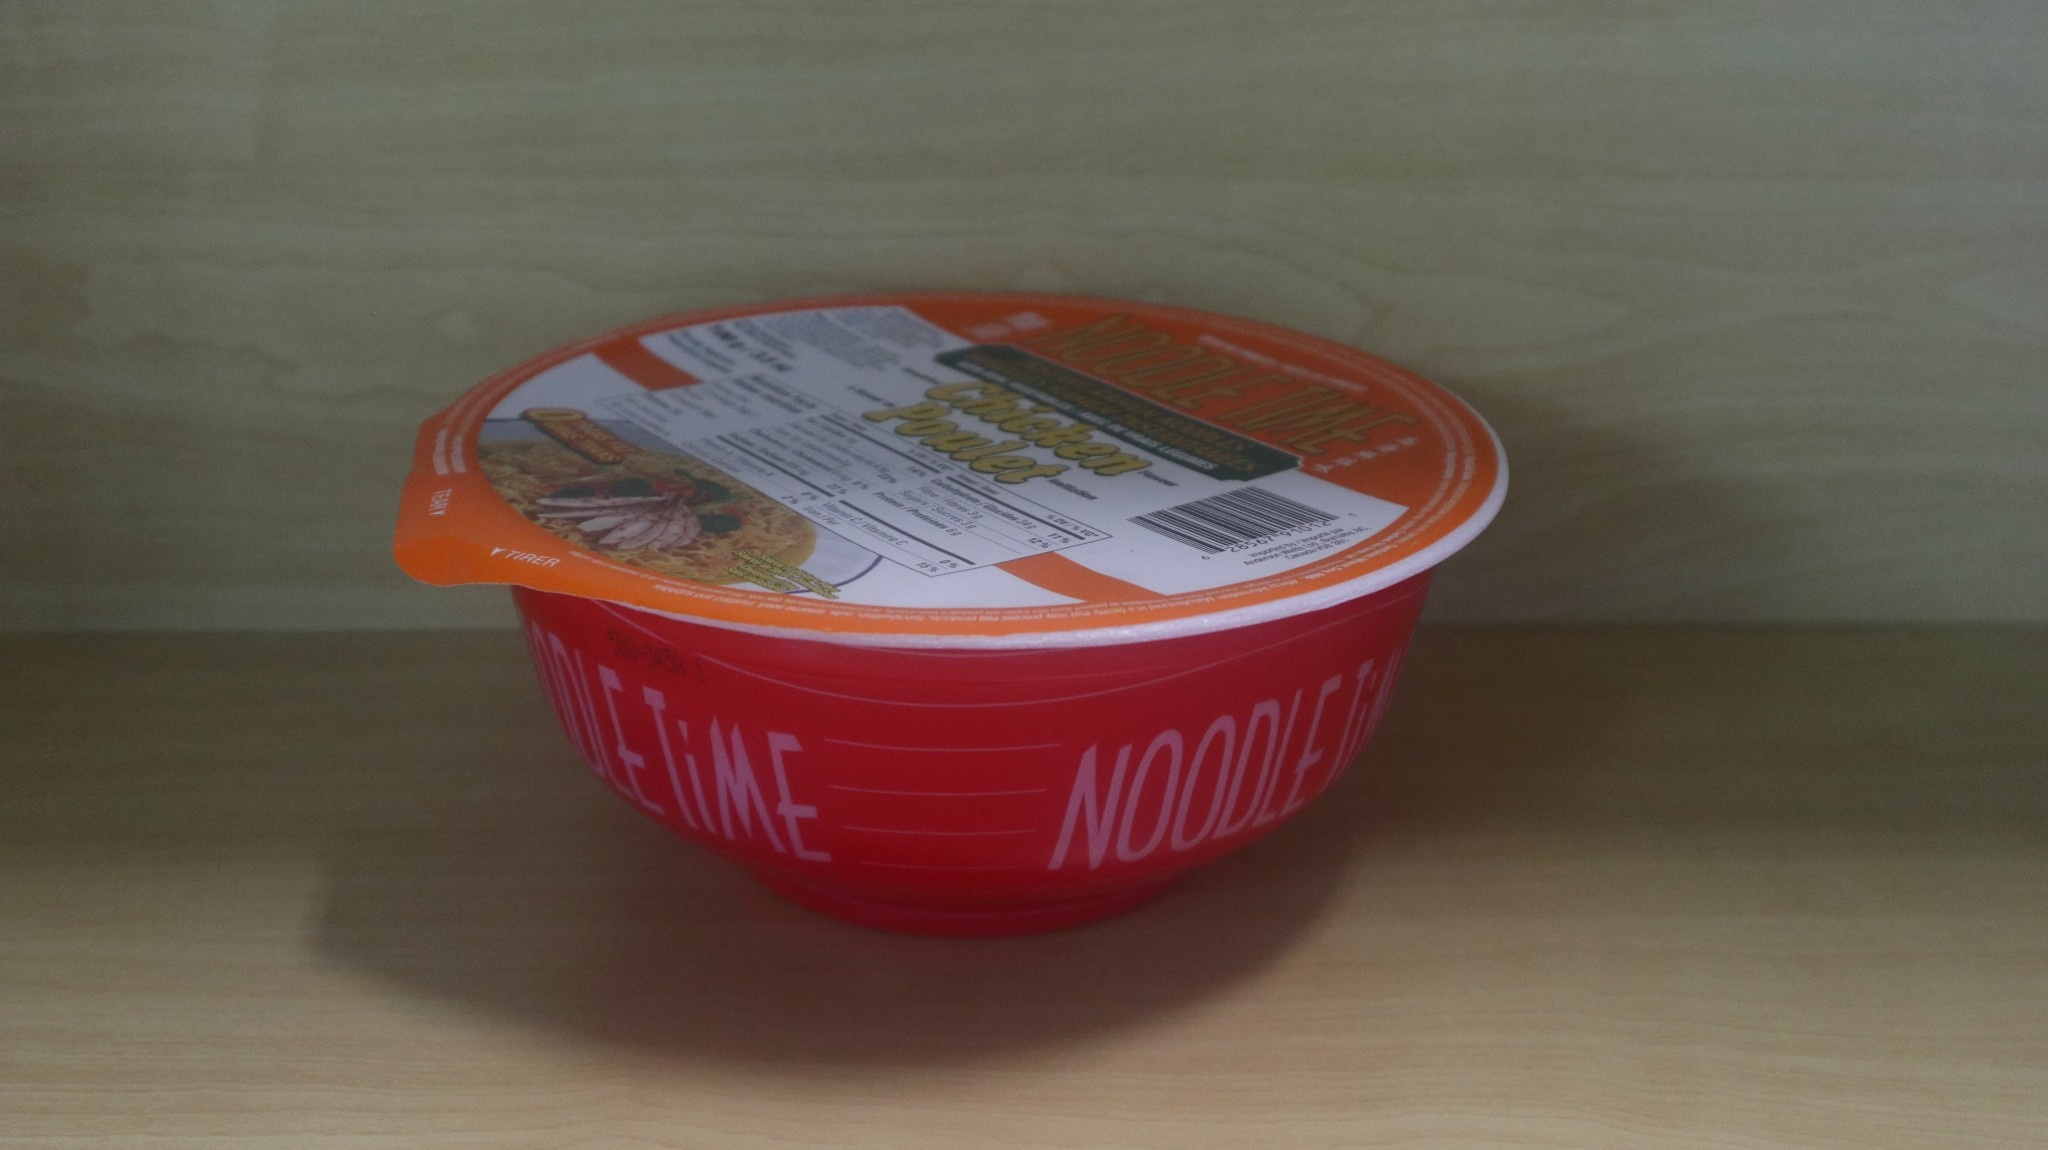 Noodle Time - Chicken - 100g